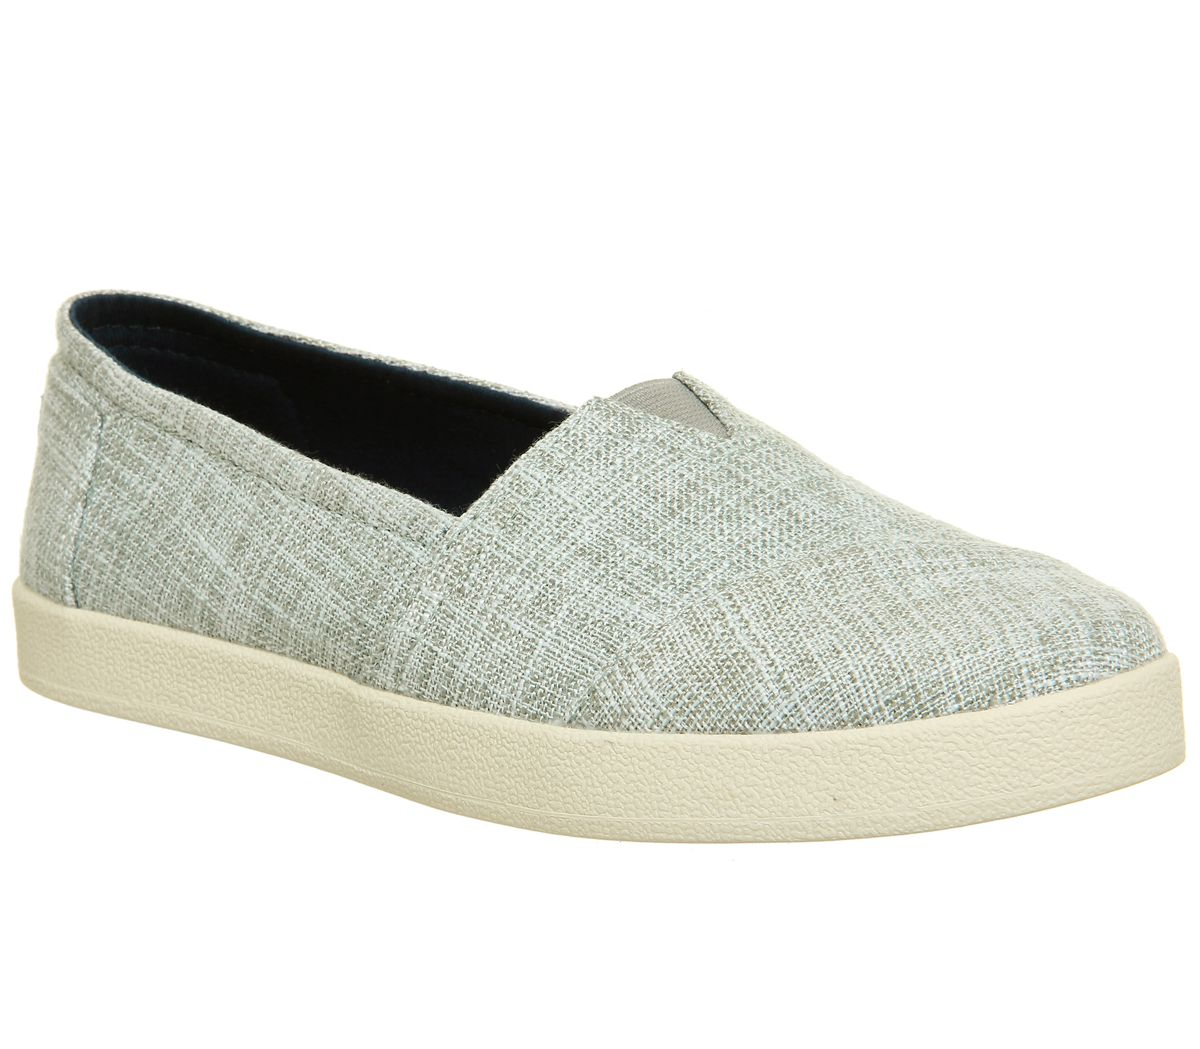 Toms Avalon Sneakers, Grey